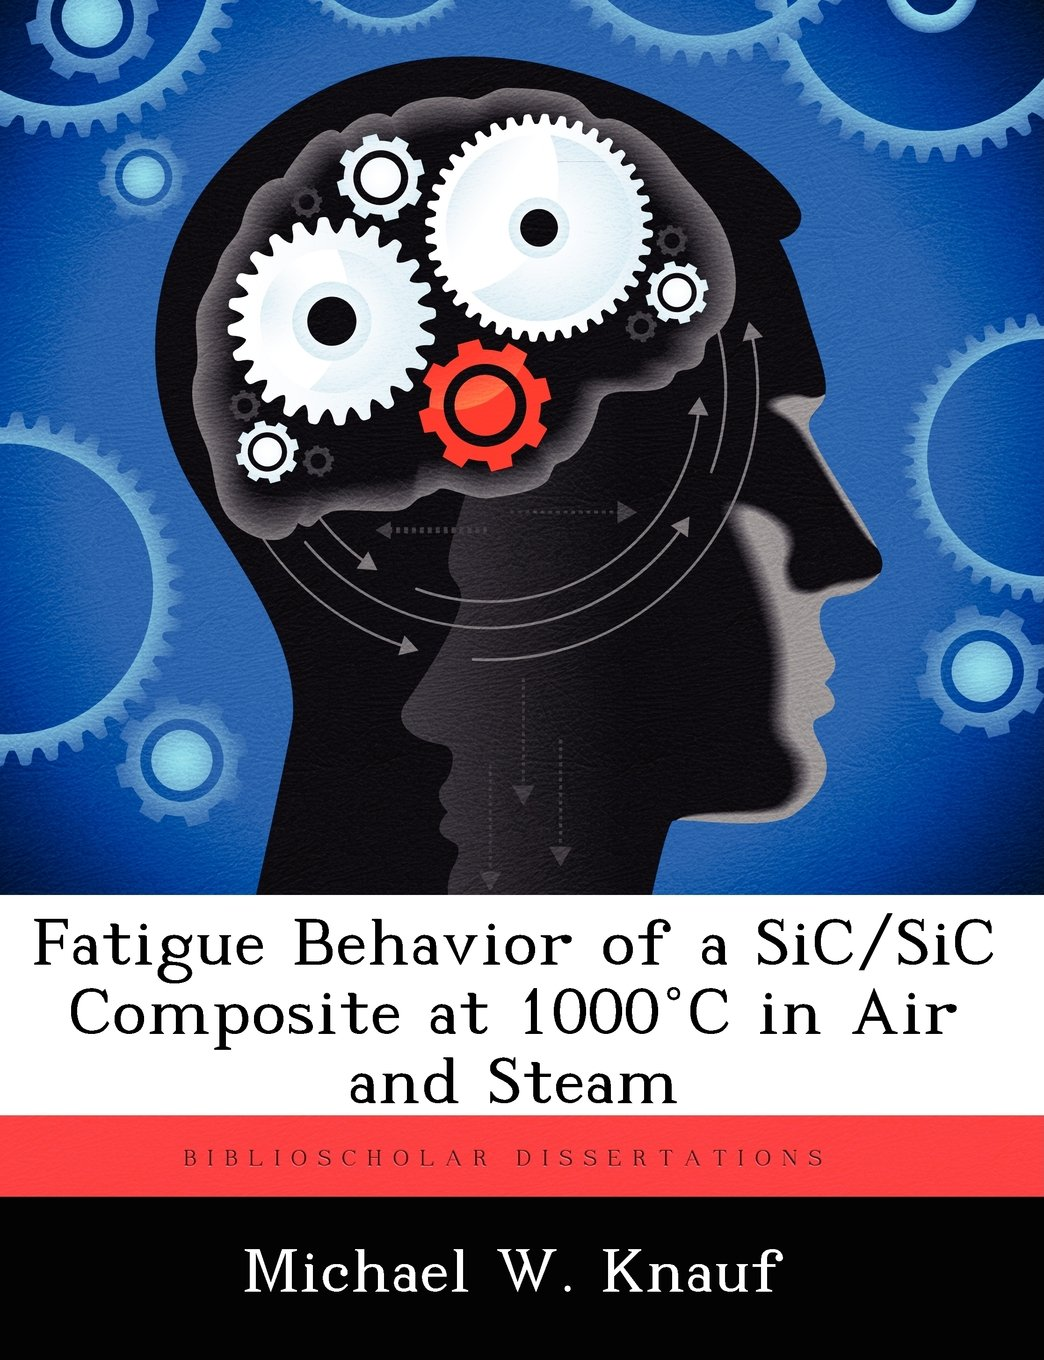 Read Online Fatigue Behavior of a SiC/SiC Composite at 1000°C in Air and Steam pdf epub